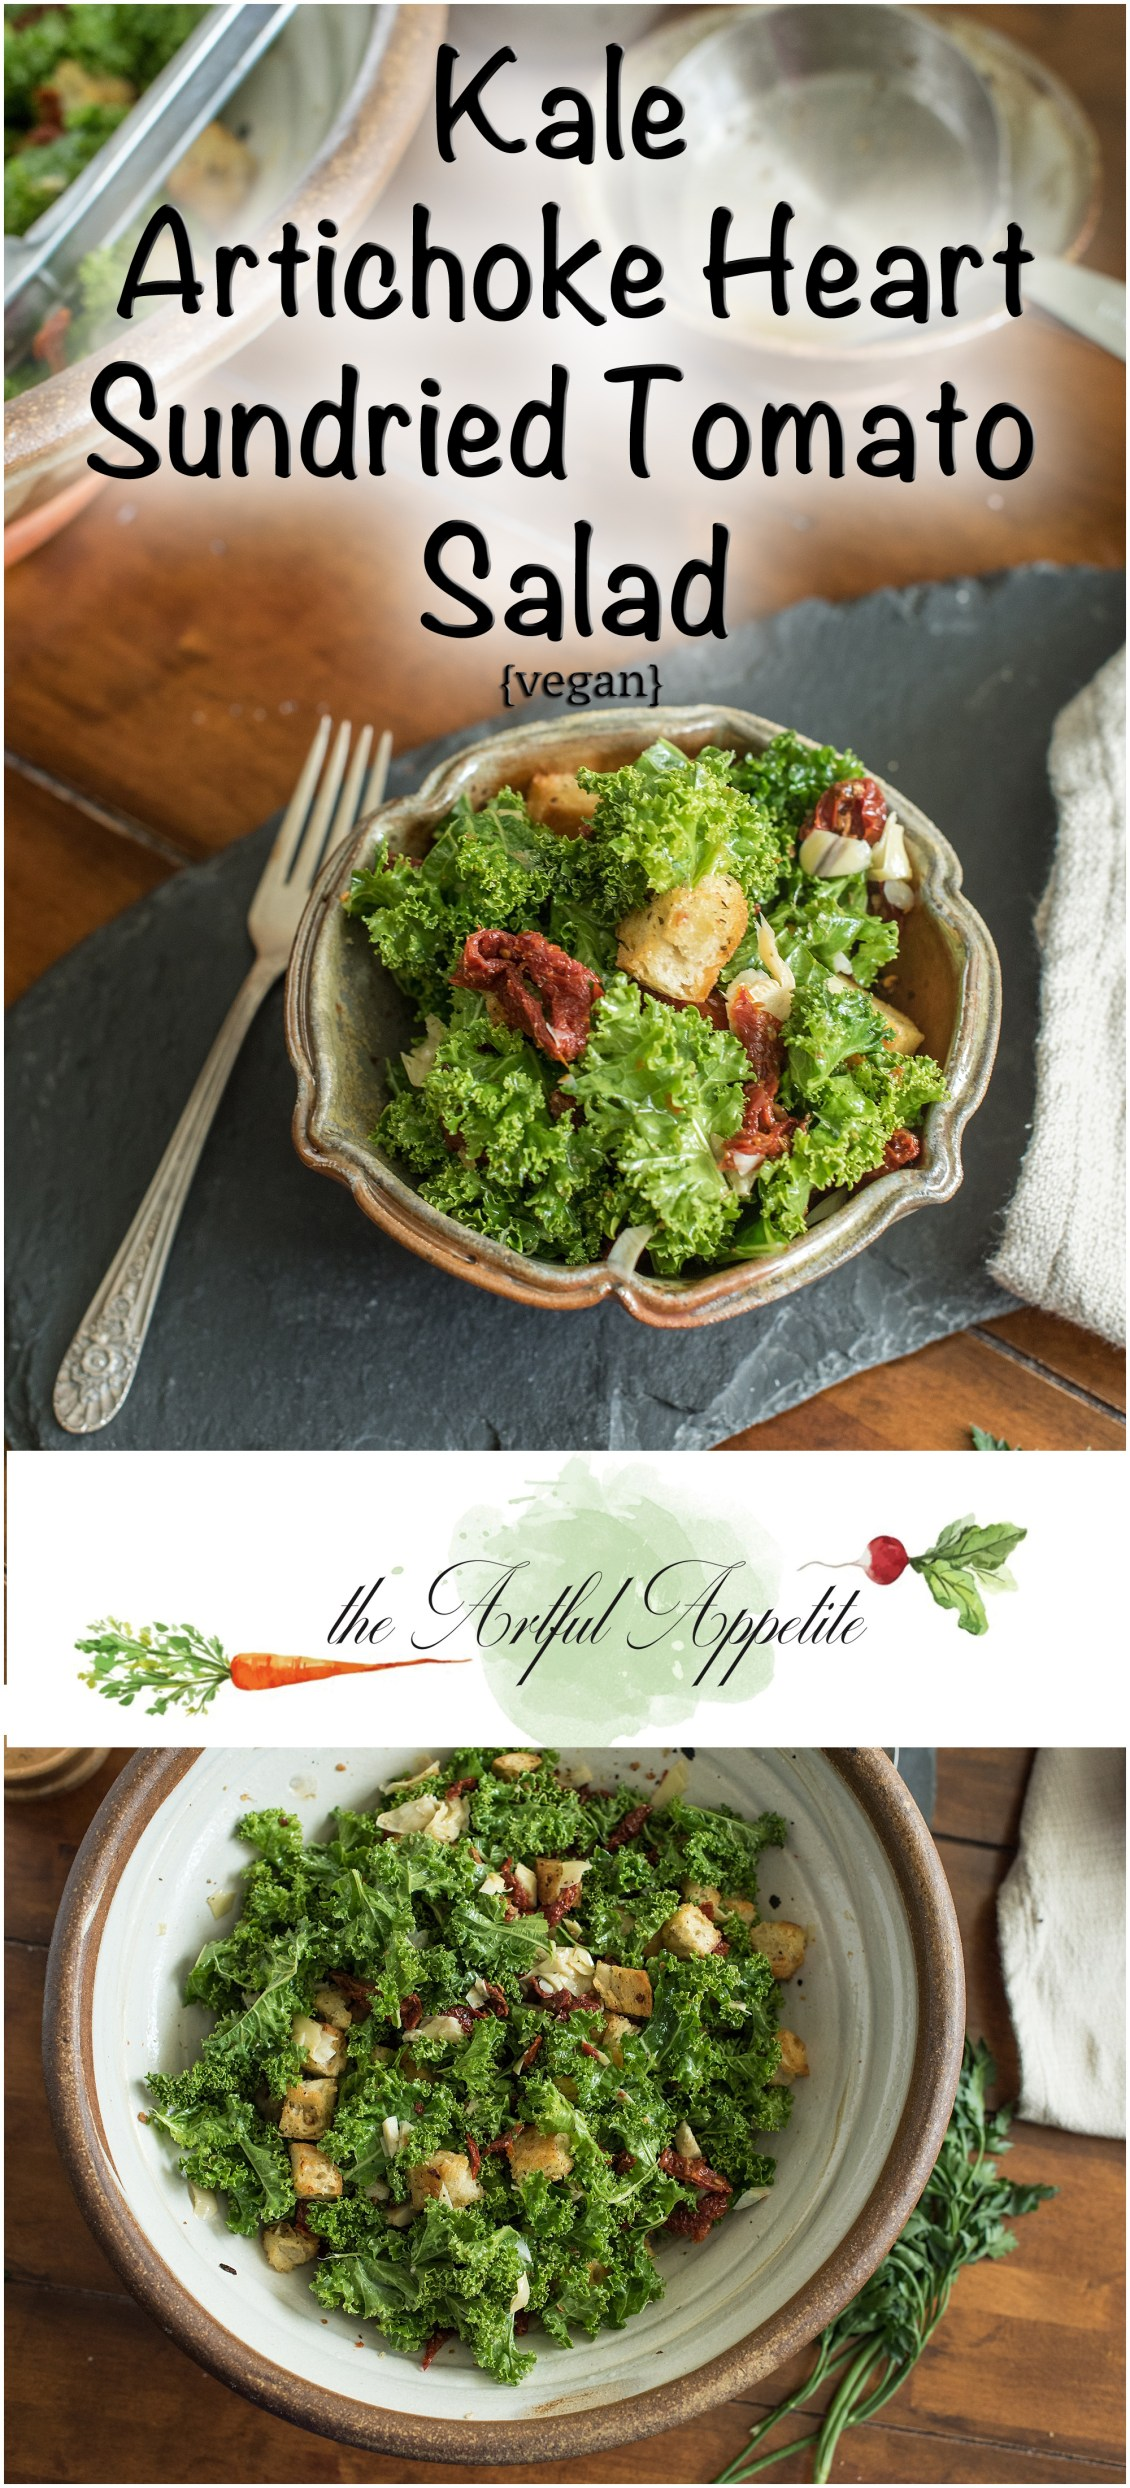 Kale Artichoke Heart Sundried Tomato Salad with croutons vegan